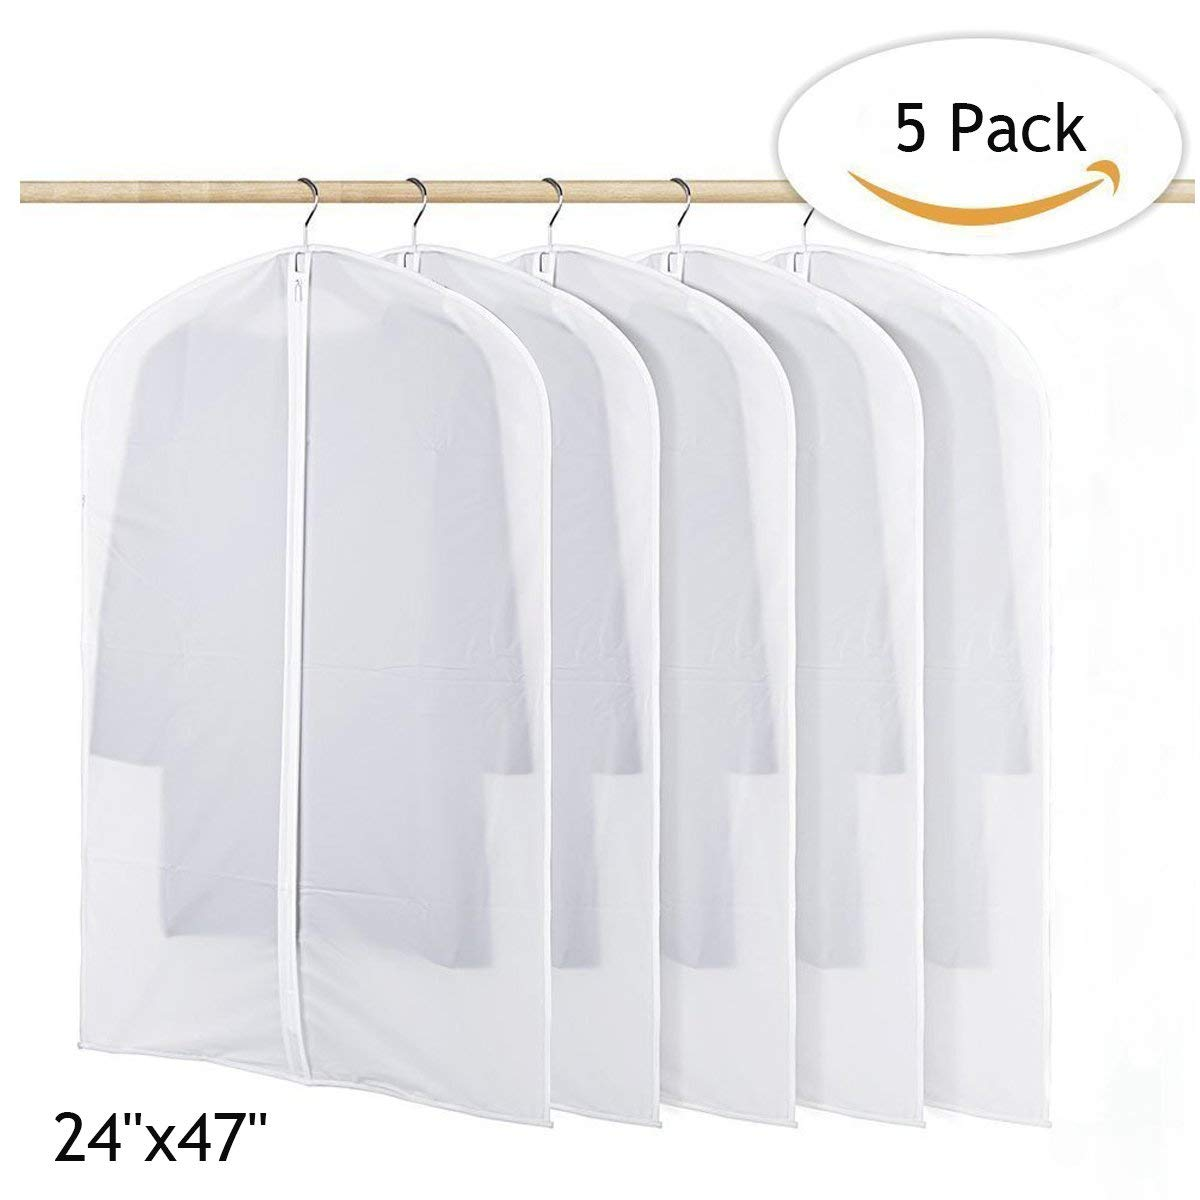 Belovelife Garment Bag, Lightweight Suit Bags Moth-proof with Study Full Zipper for Closet Storage and Travel Pack of 5